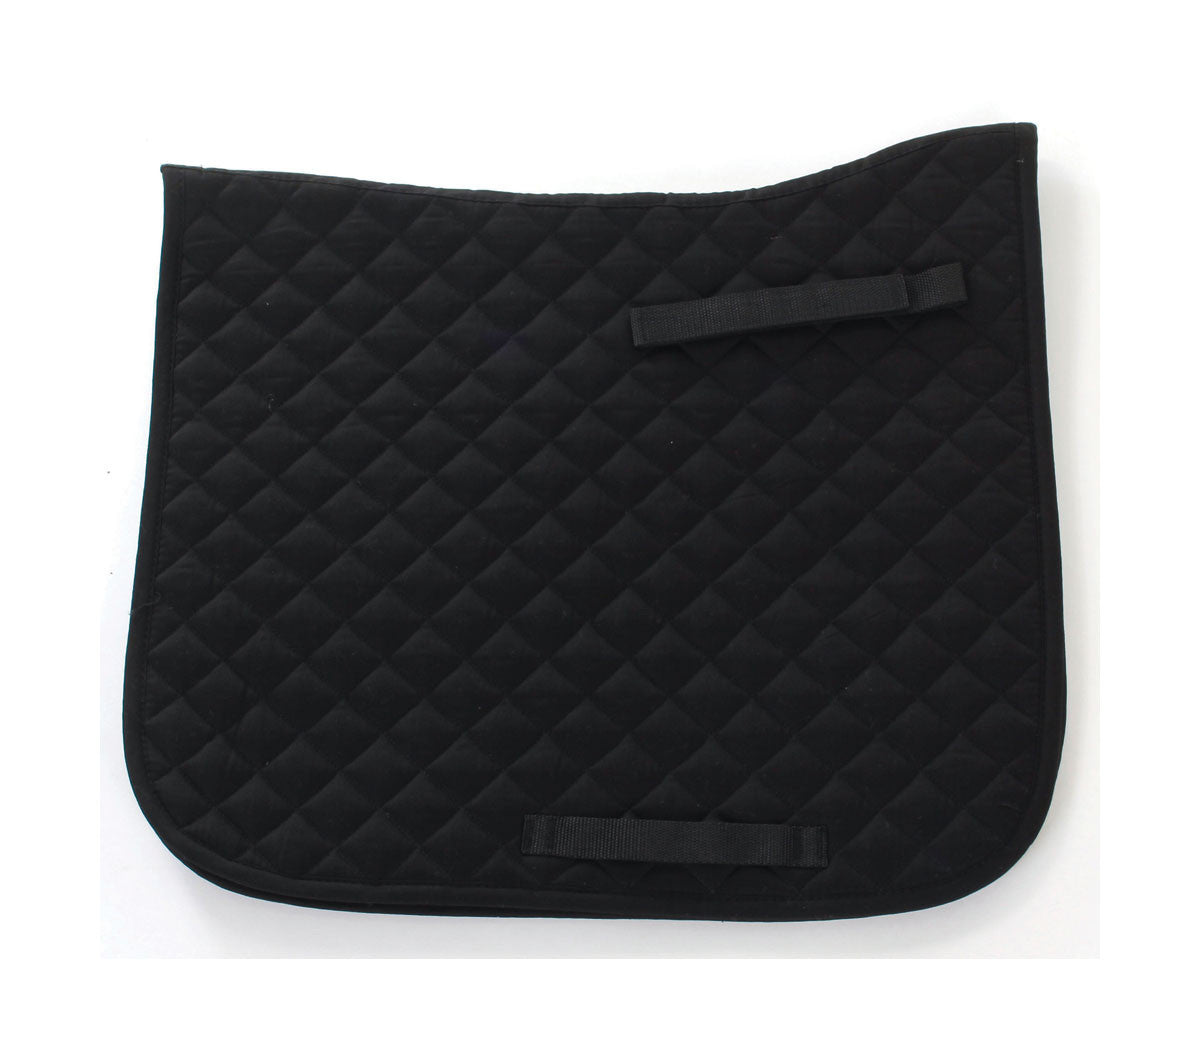 HySPEED Dressage Saddle Cloth